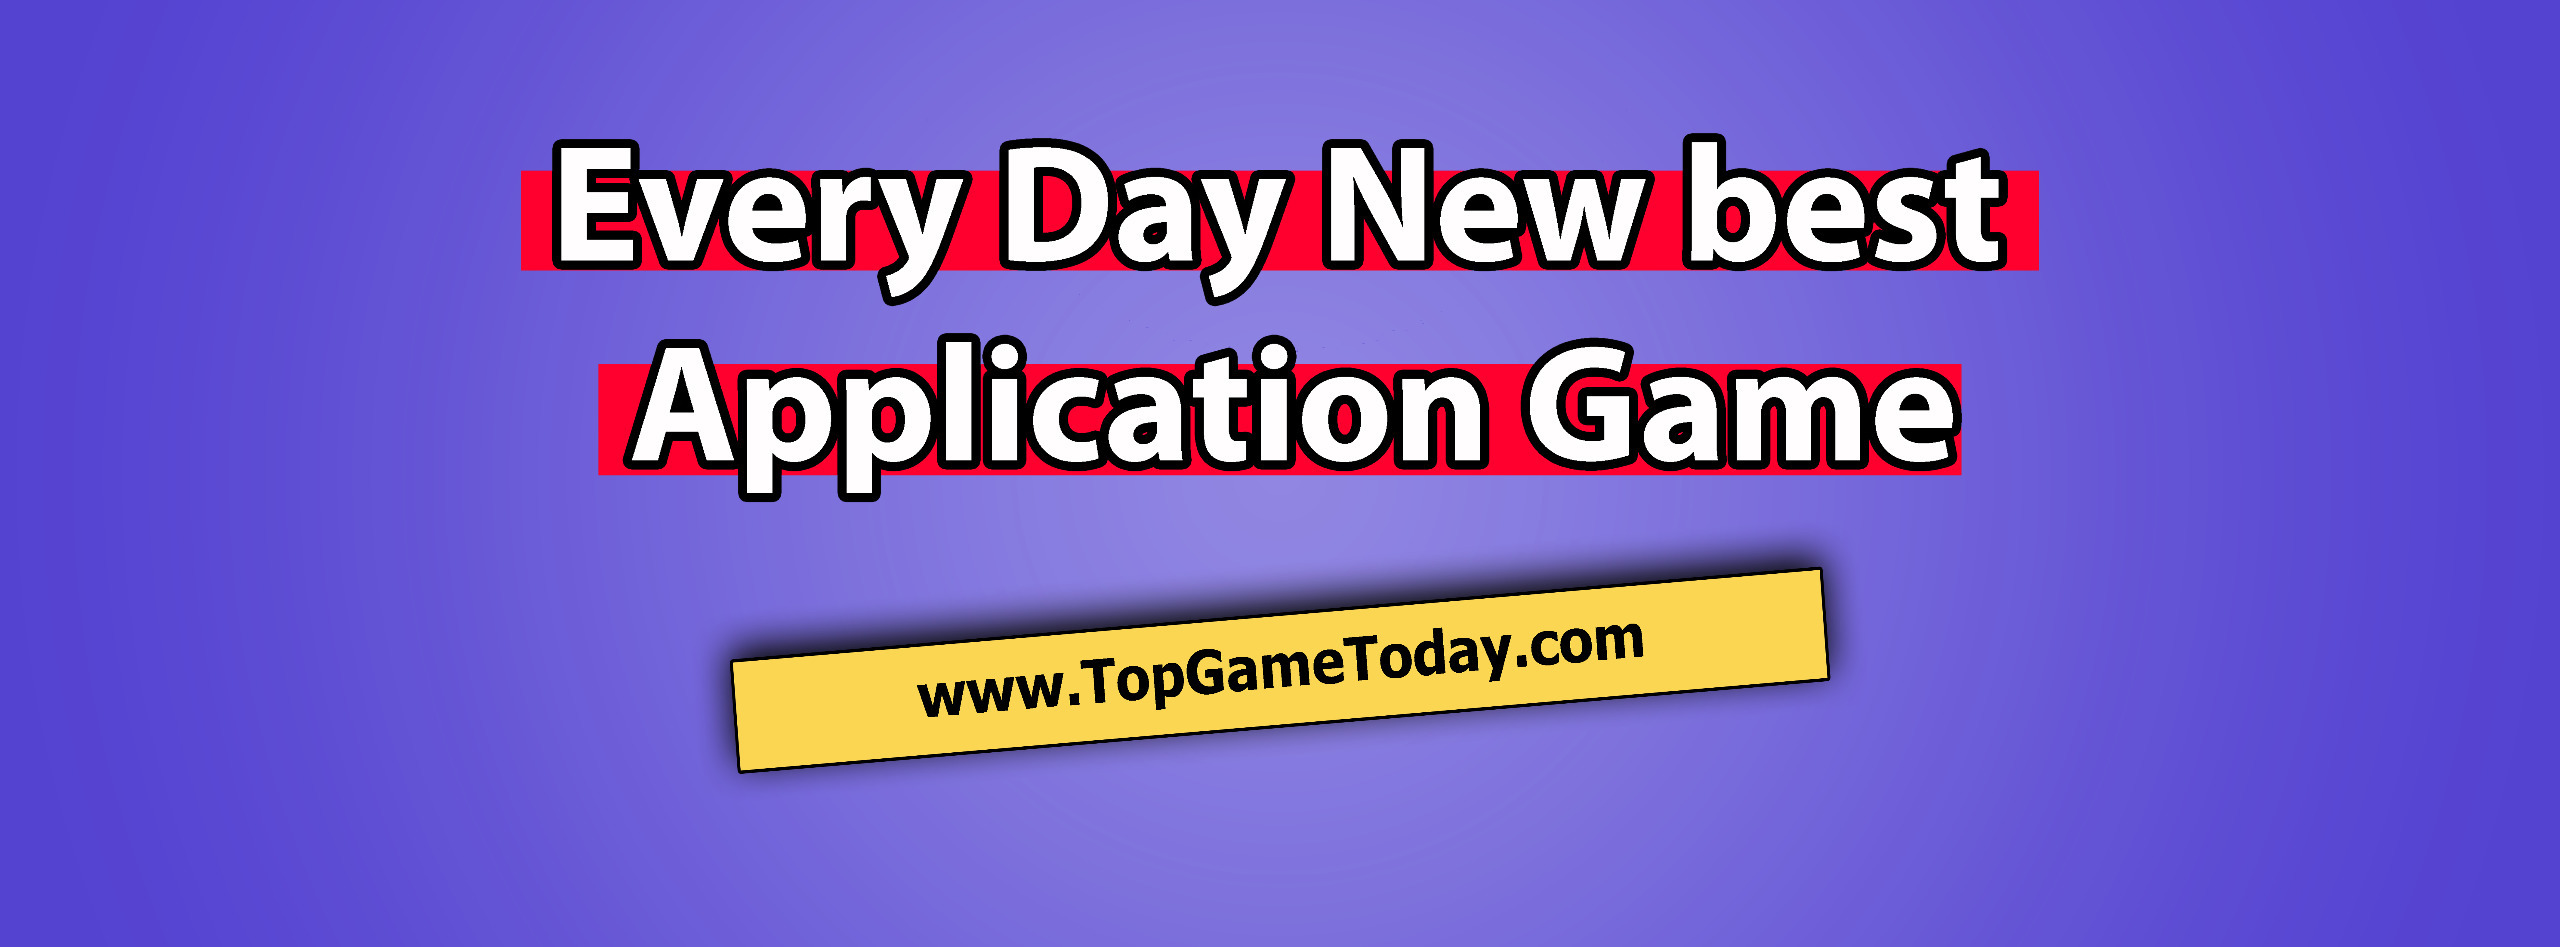 Top GAme Today (@top_game_today) Cover Image